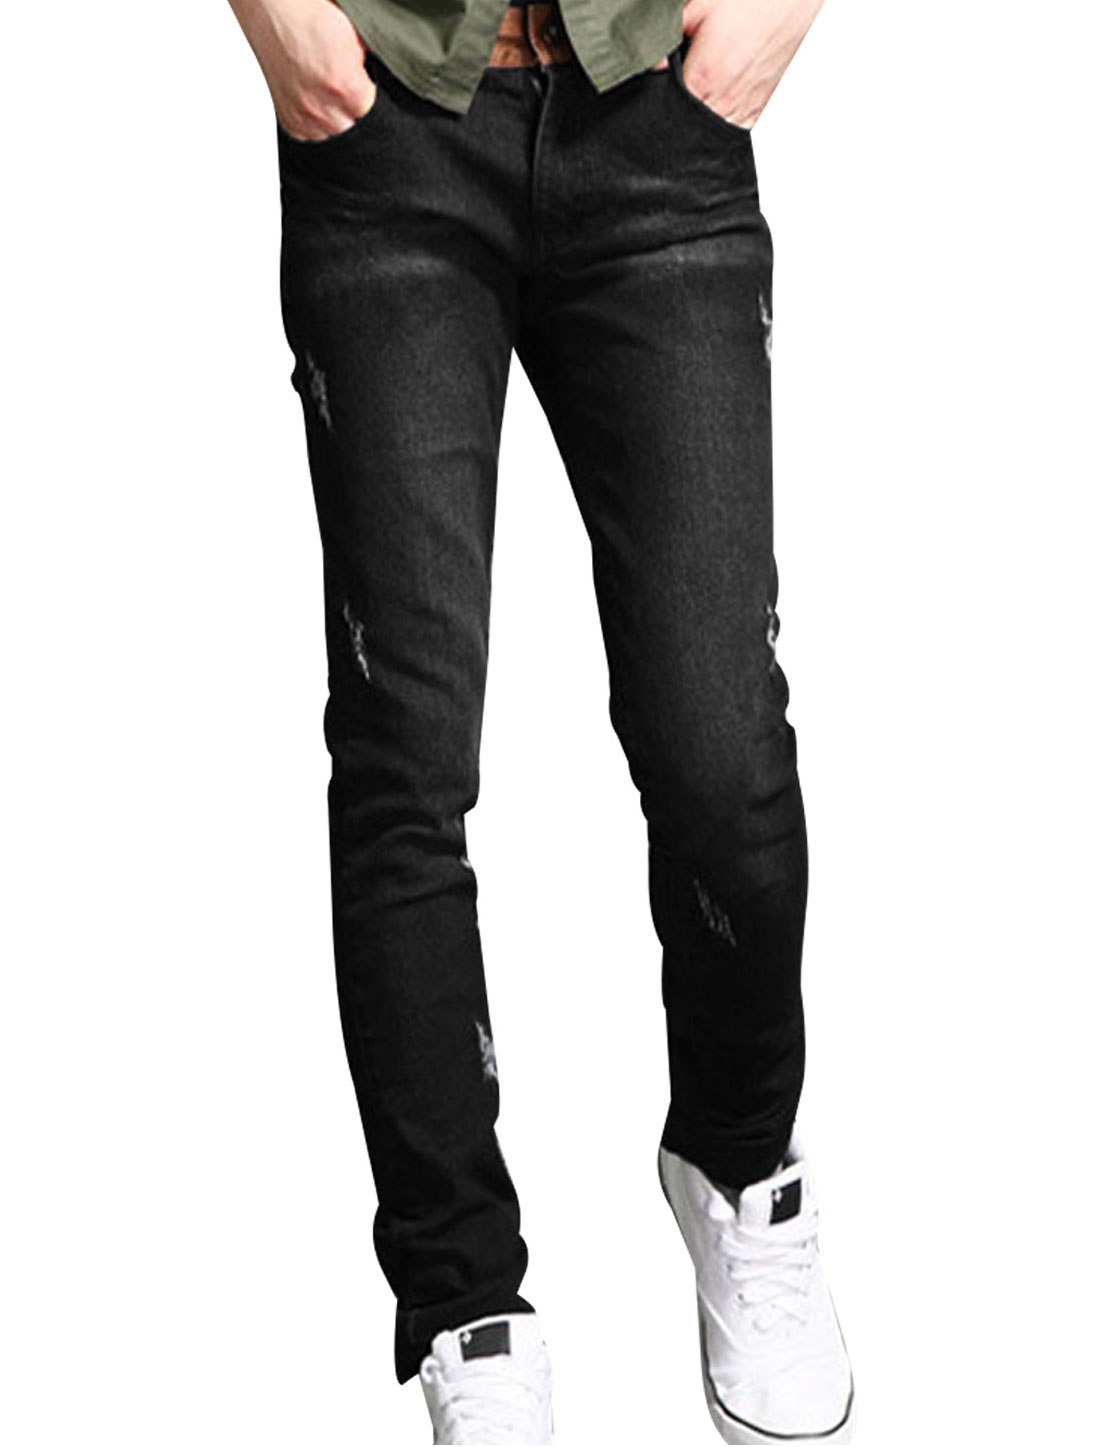 Men Black Front Slant Pockets Belt Loop Casual Denim Pants W31